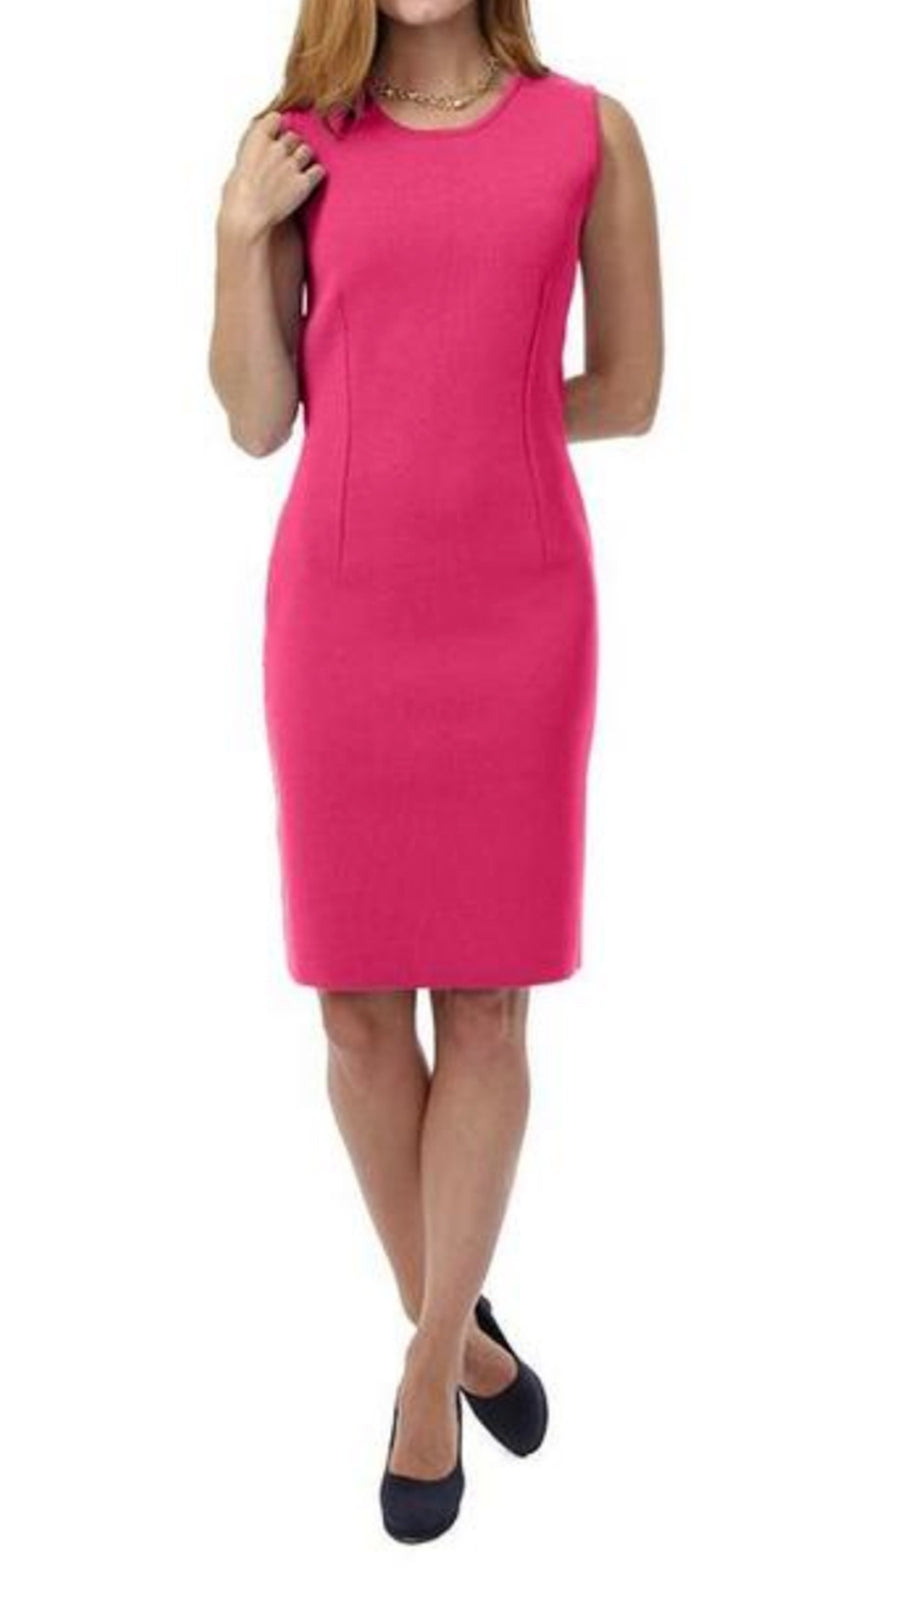 Susan Milano-Knit Dress, Pink